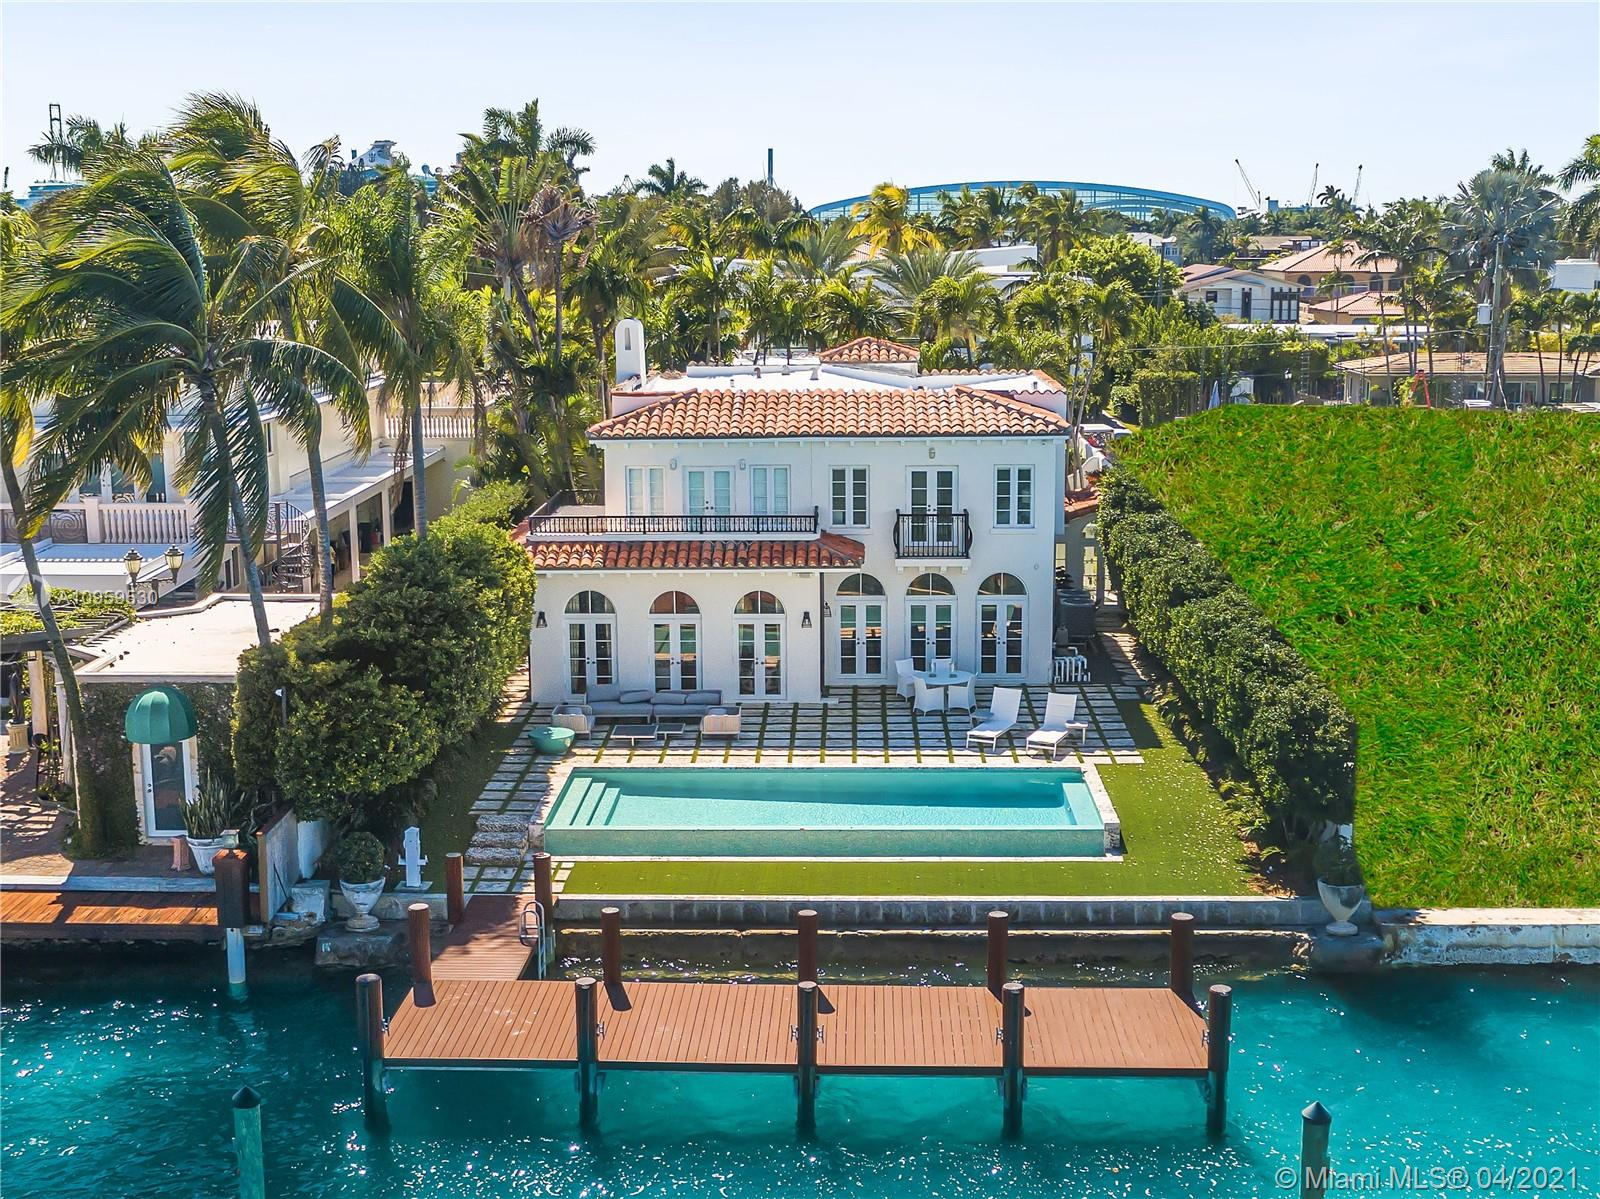 OLD WORLD ELEGANCE WITH A MODERN TWIST ON THE WIDE BAY IN HIBISCUS ISLAND! Fully Renovated 5 bed/5.5 bath Med-Mod home w/ infinity pool Overlooking 40ft Ipe Wood Dock + 60 Ft of Waterfront w/ Open Bay Views. 4,619 SQFT Living Space on a 10,500 SQFT lot. Marble Floors w/ In-laid Design in Formal Living Room; Coffered Ceilings in Family Room Leads to Dining room. Wide-Plank Walnut Floors on 2nd Floor. Custom Chef's Kitchen in White Lacquer Clive Christian Cabinetry w/ La Cornue Gas Range & Stainless-Steel Wolf Appliances; Furnished by Artefacto & Kemble Interiors. 3 Bedrooms in the Main House + 2 Bedrooms in Two-Story Guest House w/ living room, dining area & kitchenette. Landscaped Interior Courtyard Unites the 2 Wings of the Home. Polished Nickel Plumbing. Savant Home Automation System.